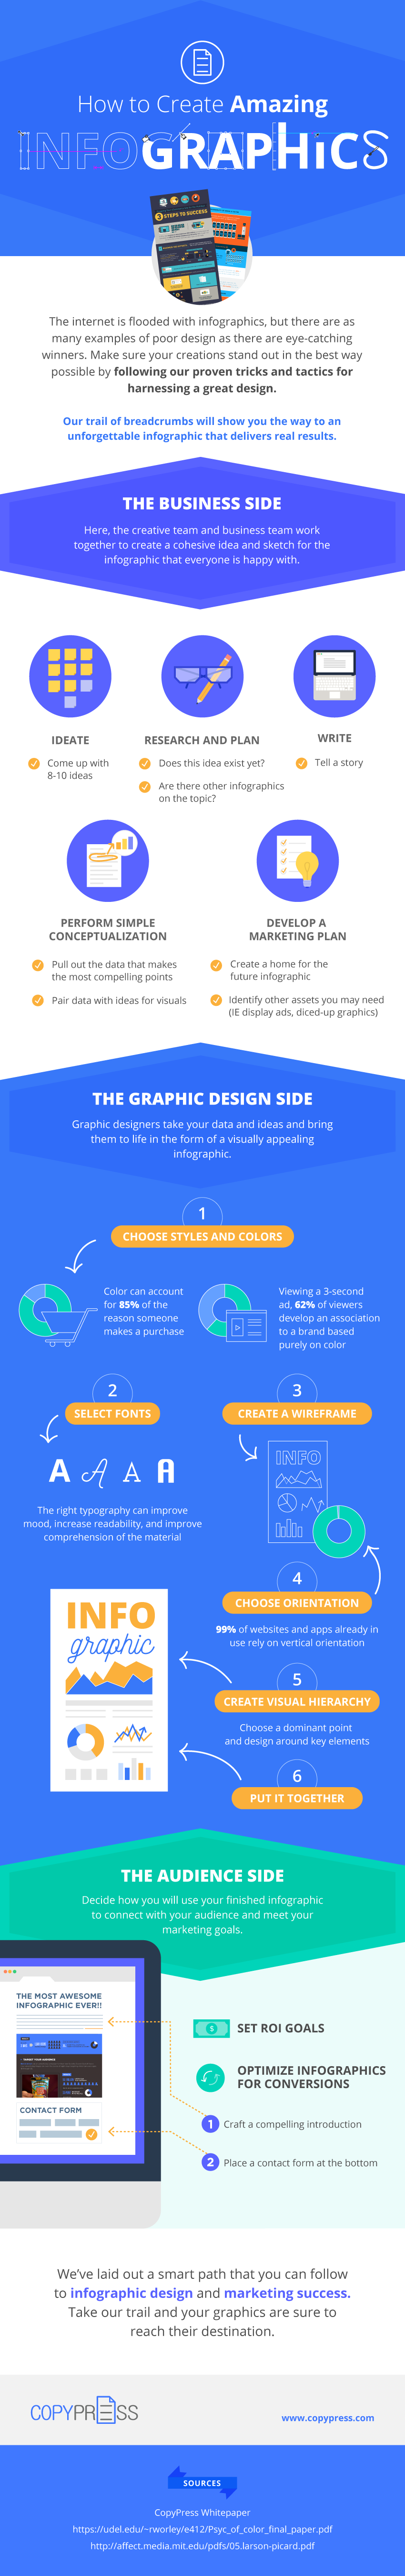 infographic graphic design copypress